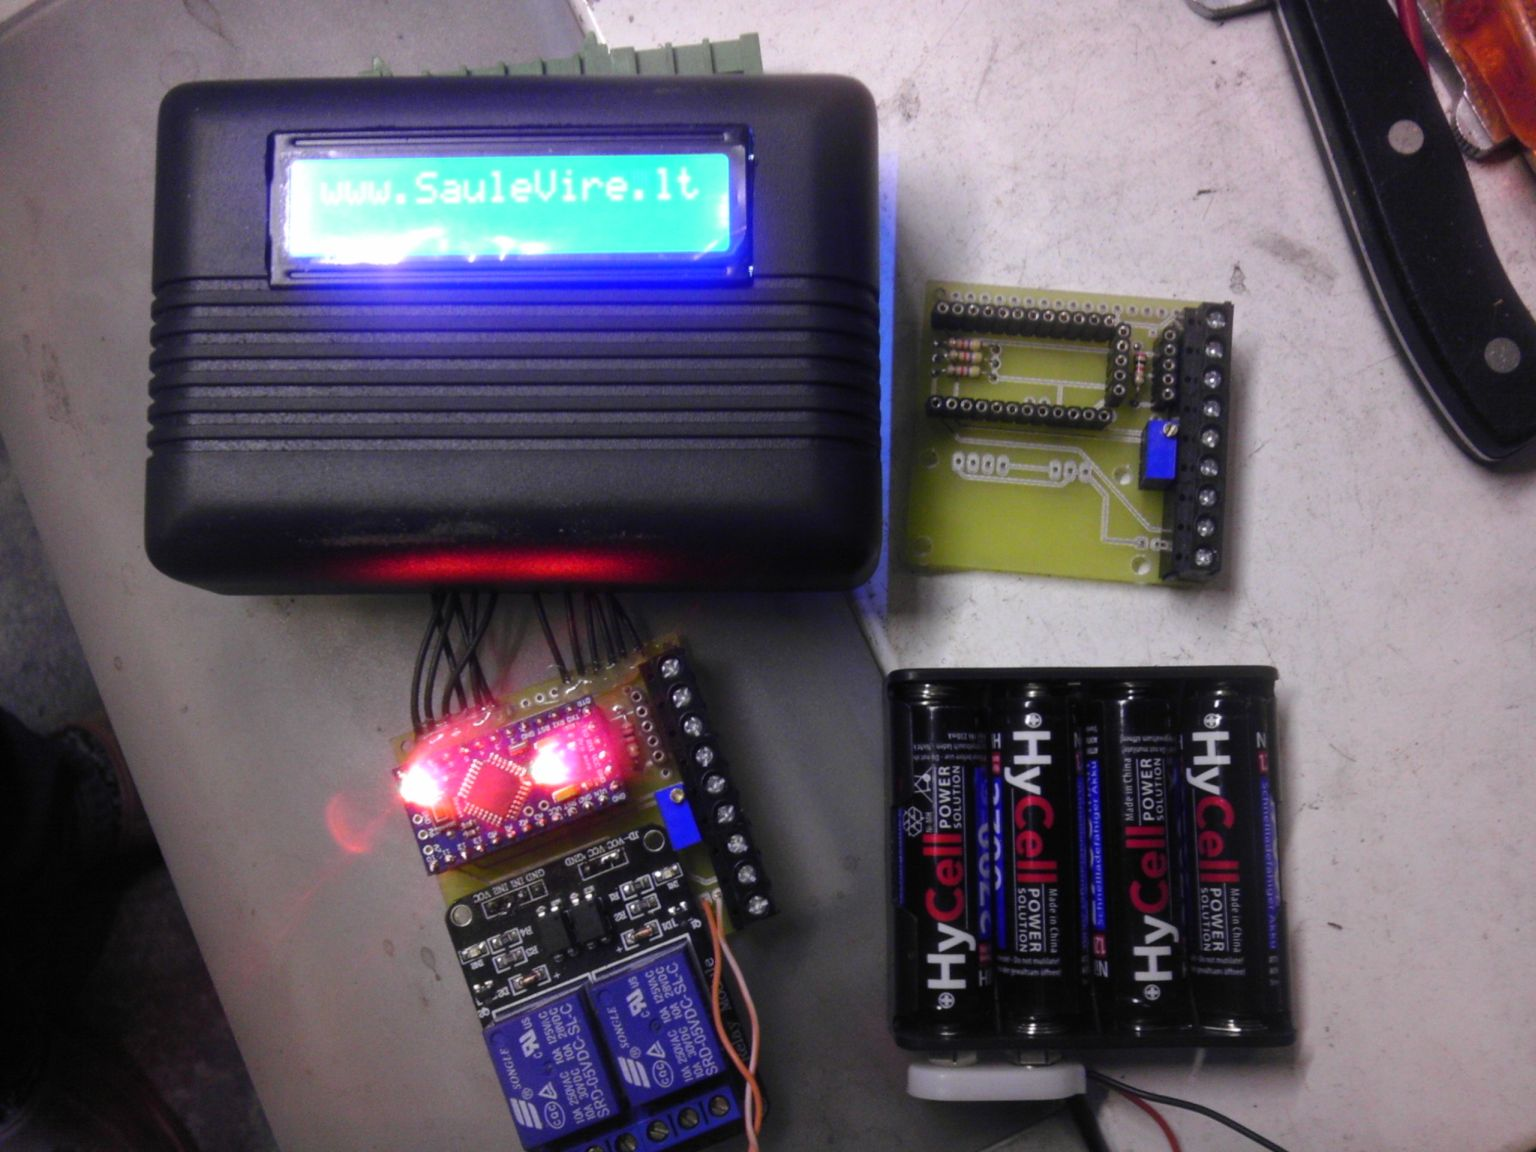 Hot water solar collector controller with thermostat v1.0